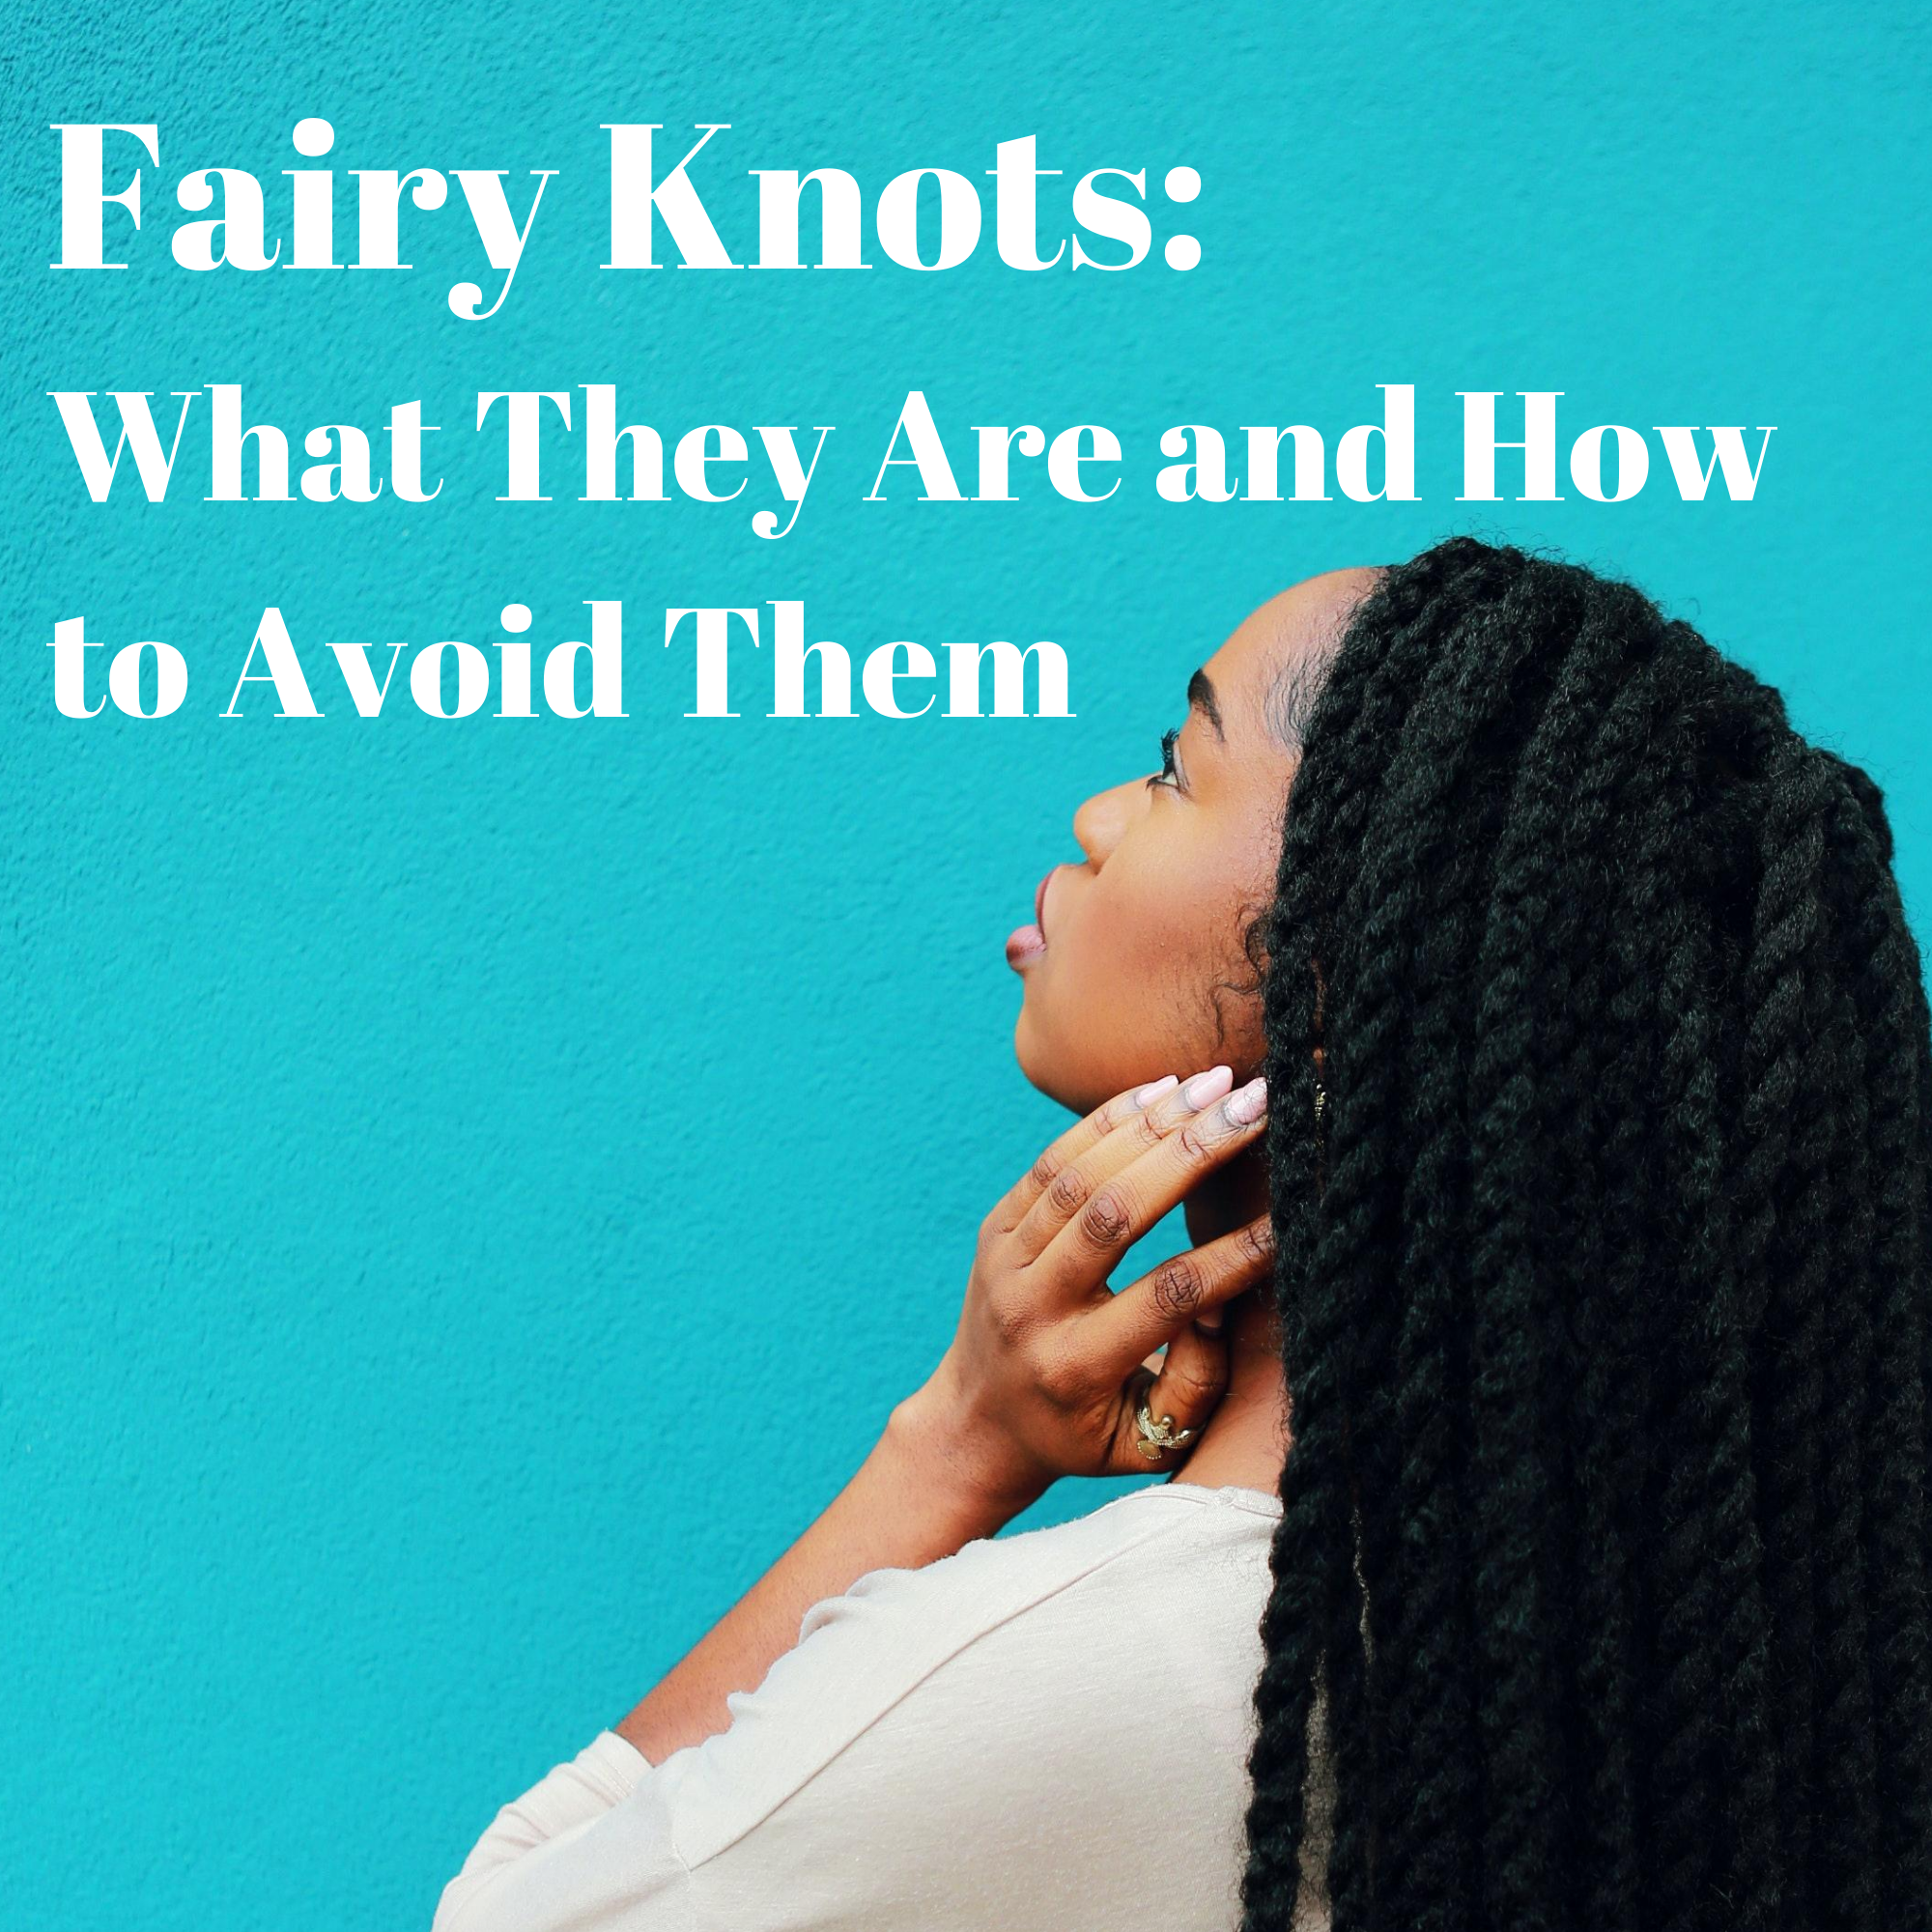 FAIRY KNOTS: WHAT THEY ARE AND HOW TO AVOID THEM